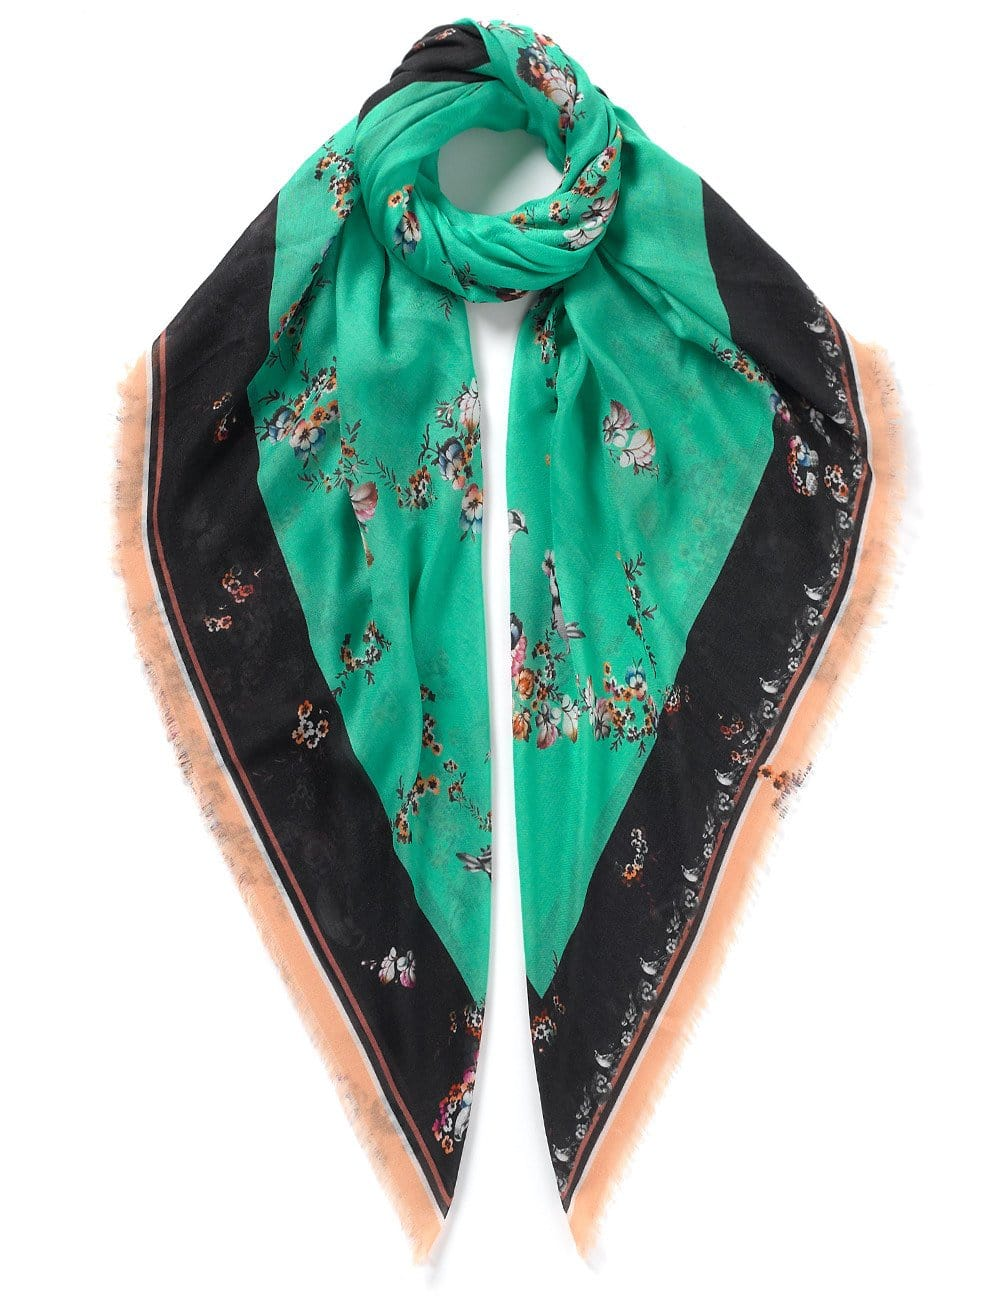 Vassilisa: Floral print scarf turquoise | Accessories > Scarves,Accessories -  Hiphunters Shop